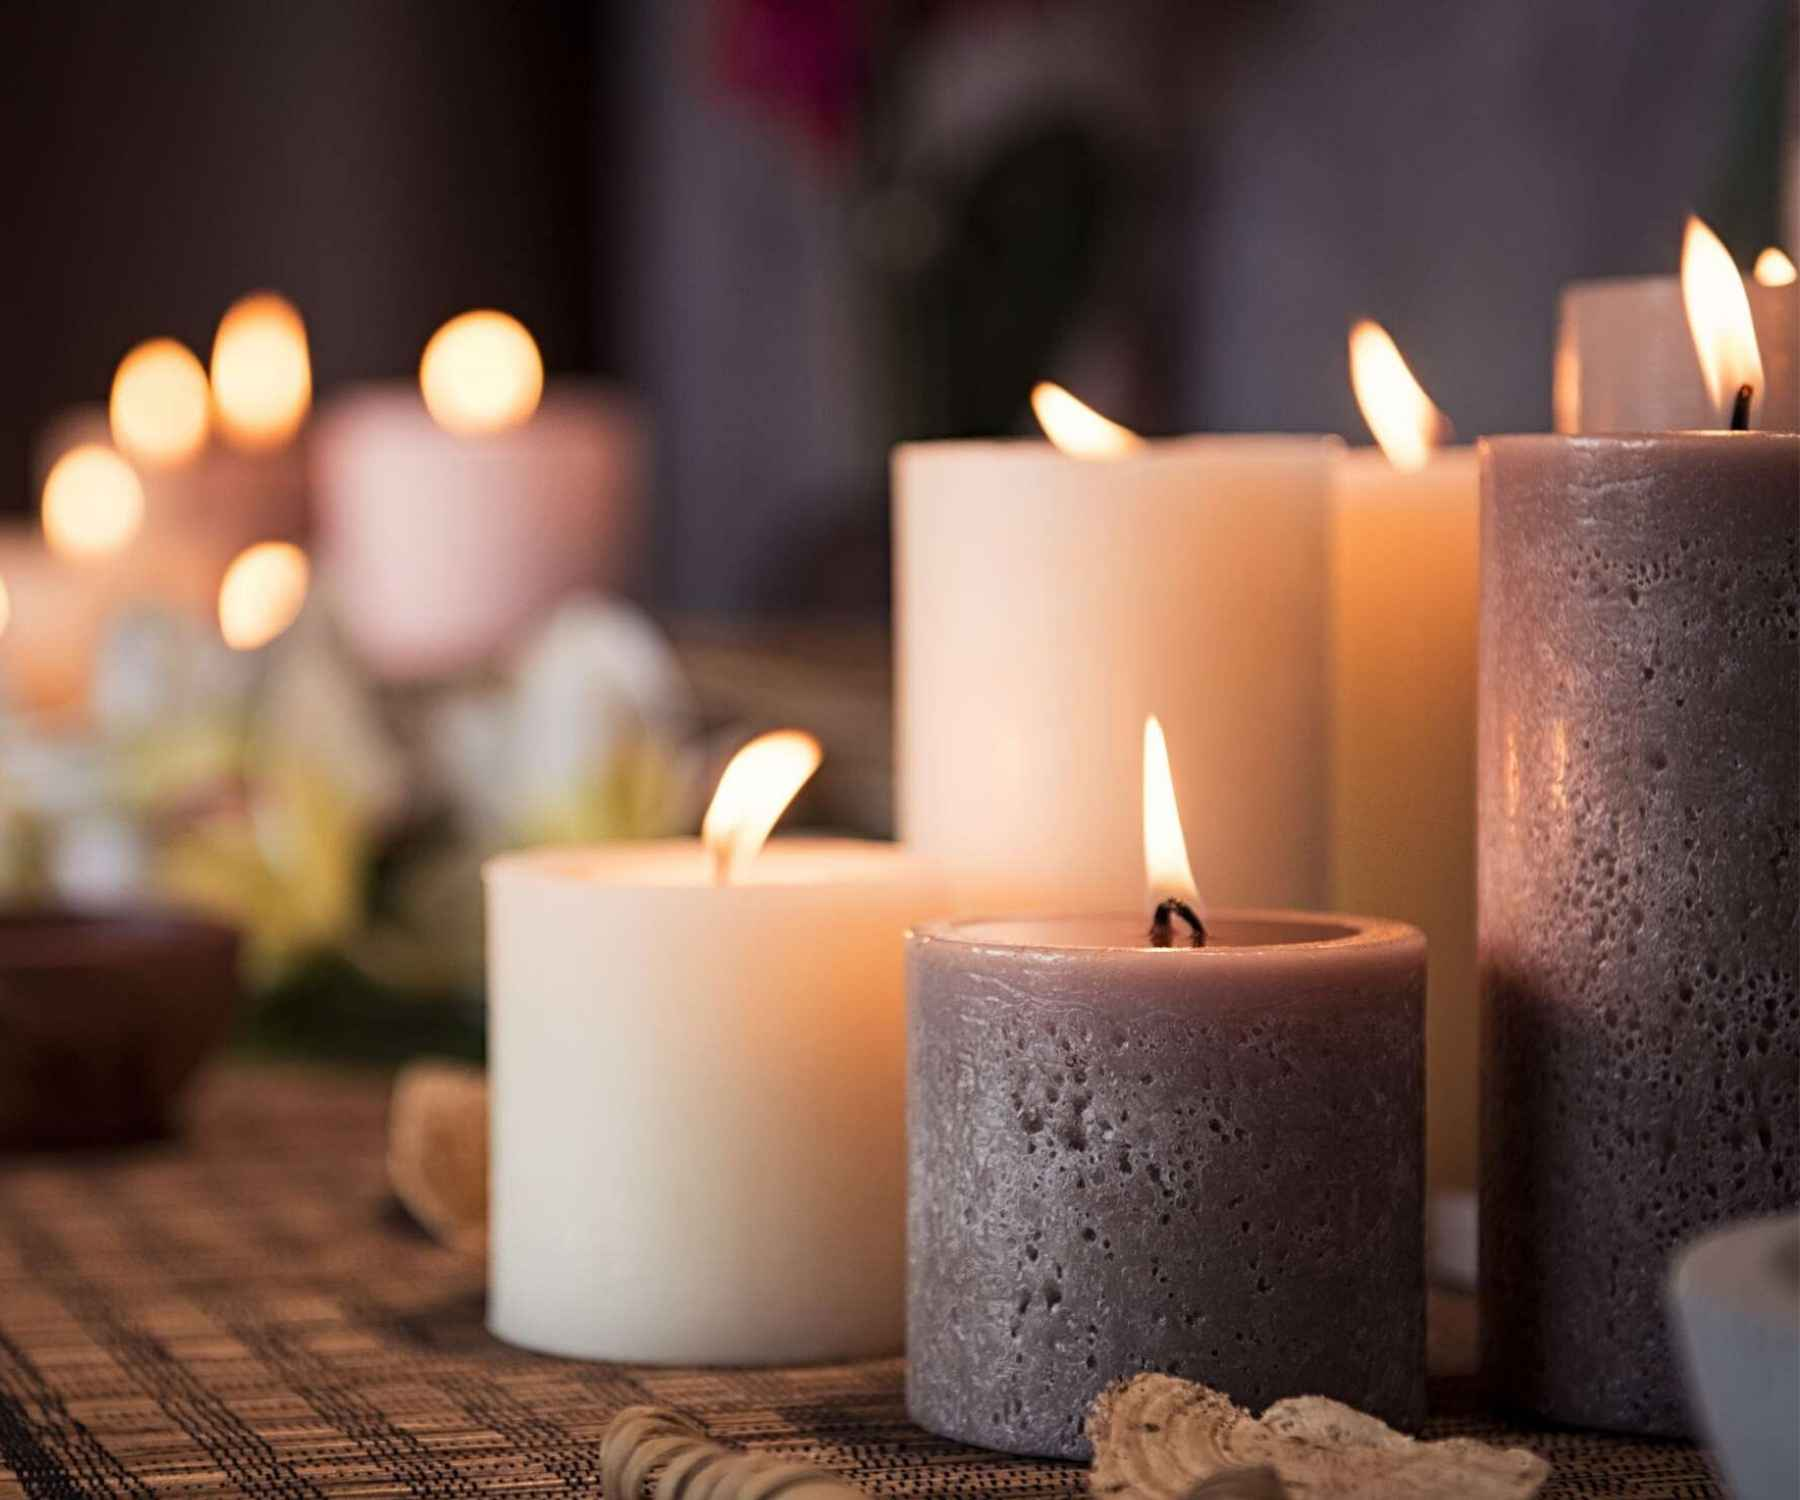 Close up of three lit candles on a wooden table